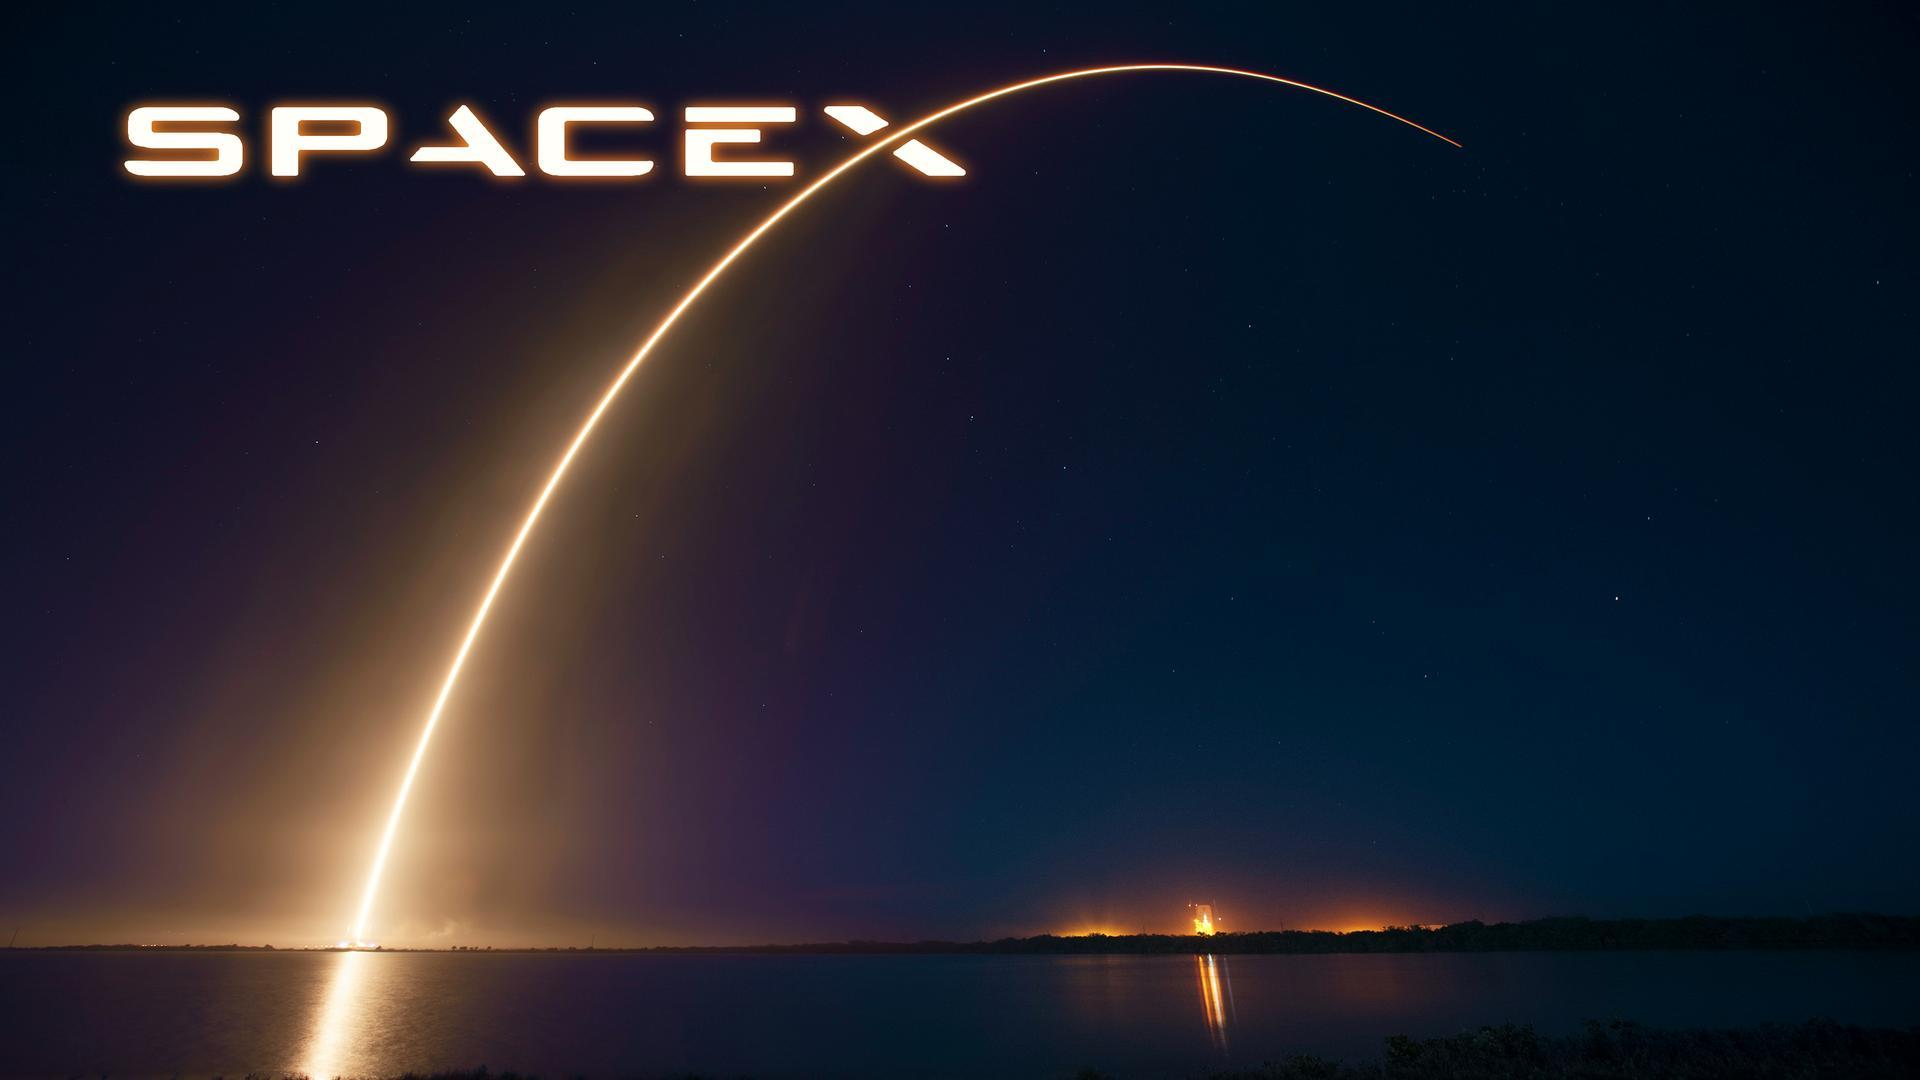 SpaceX Wallpapers - Wallpaper Cave